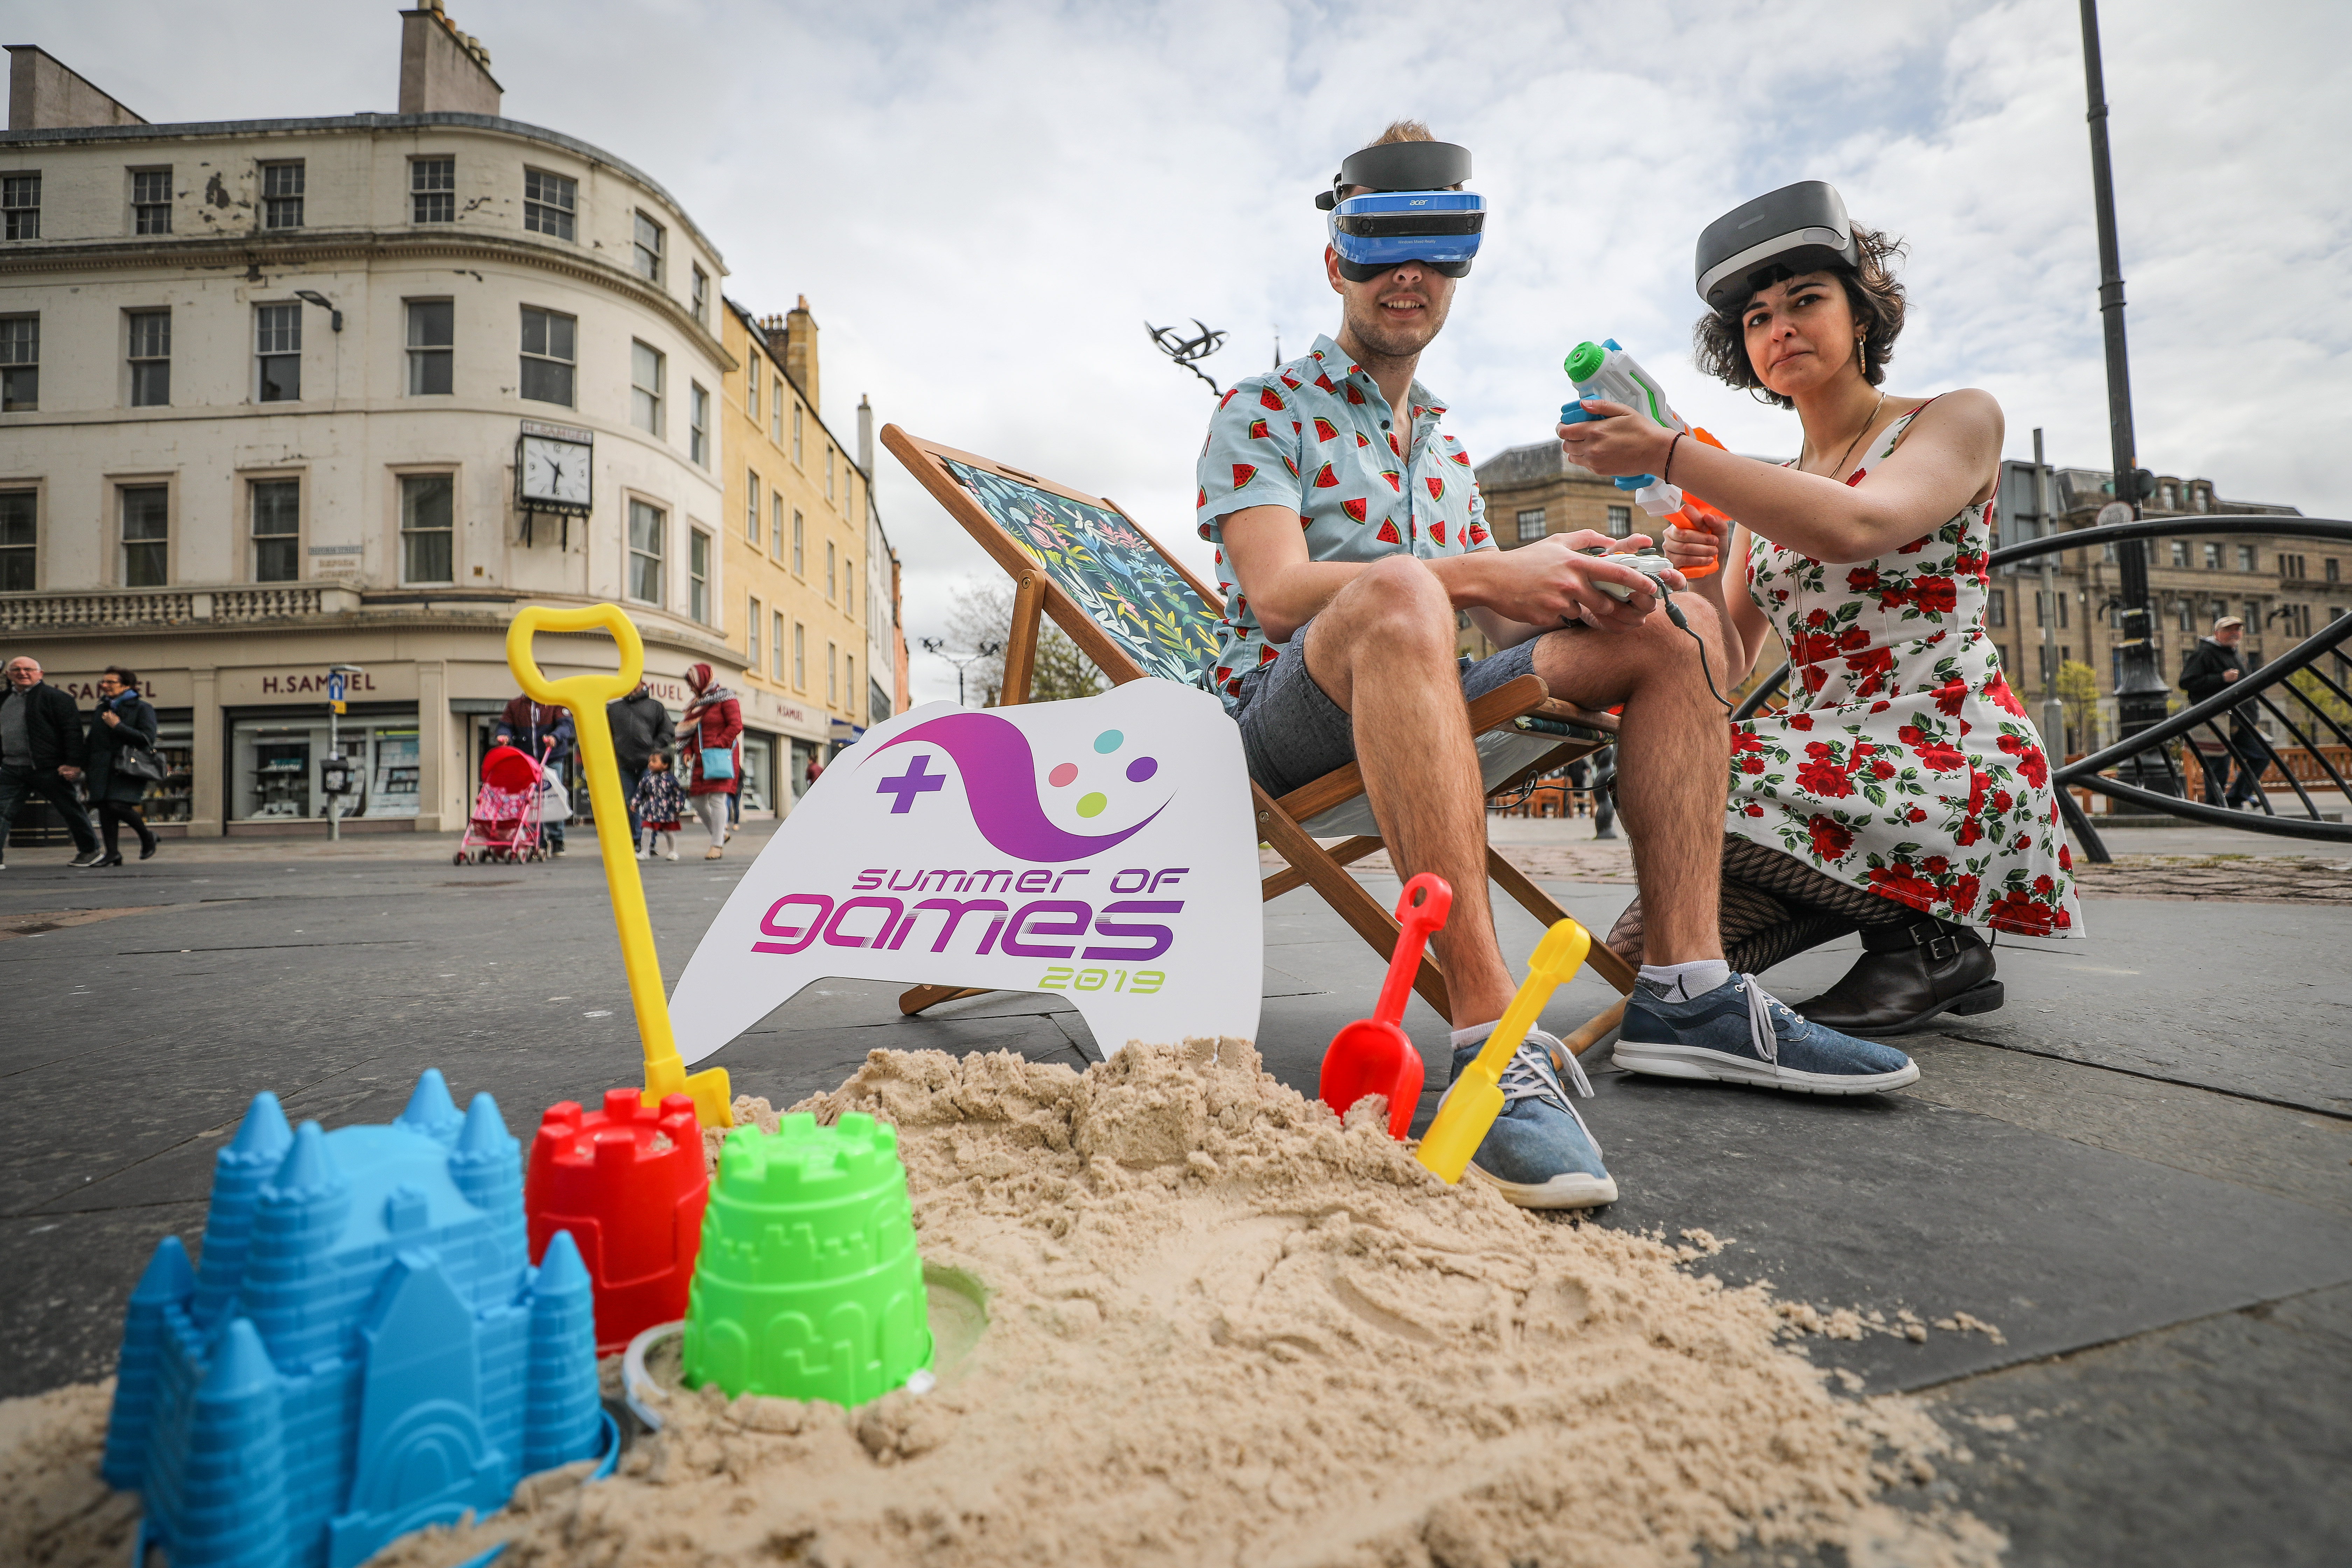 Students from Abertay took to the City Square to launch the Summer of Games